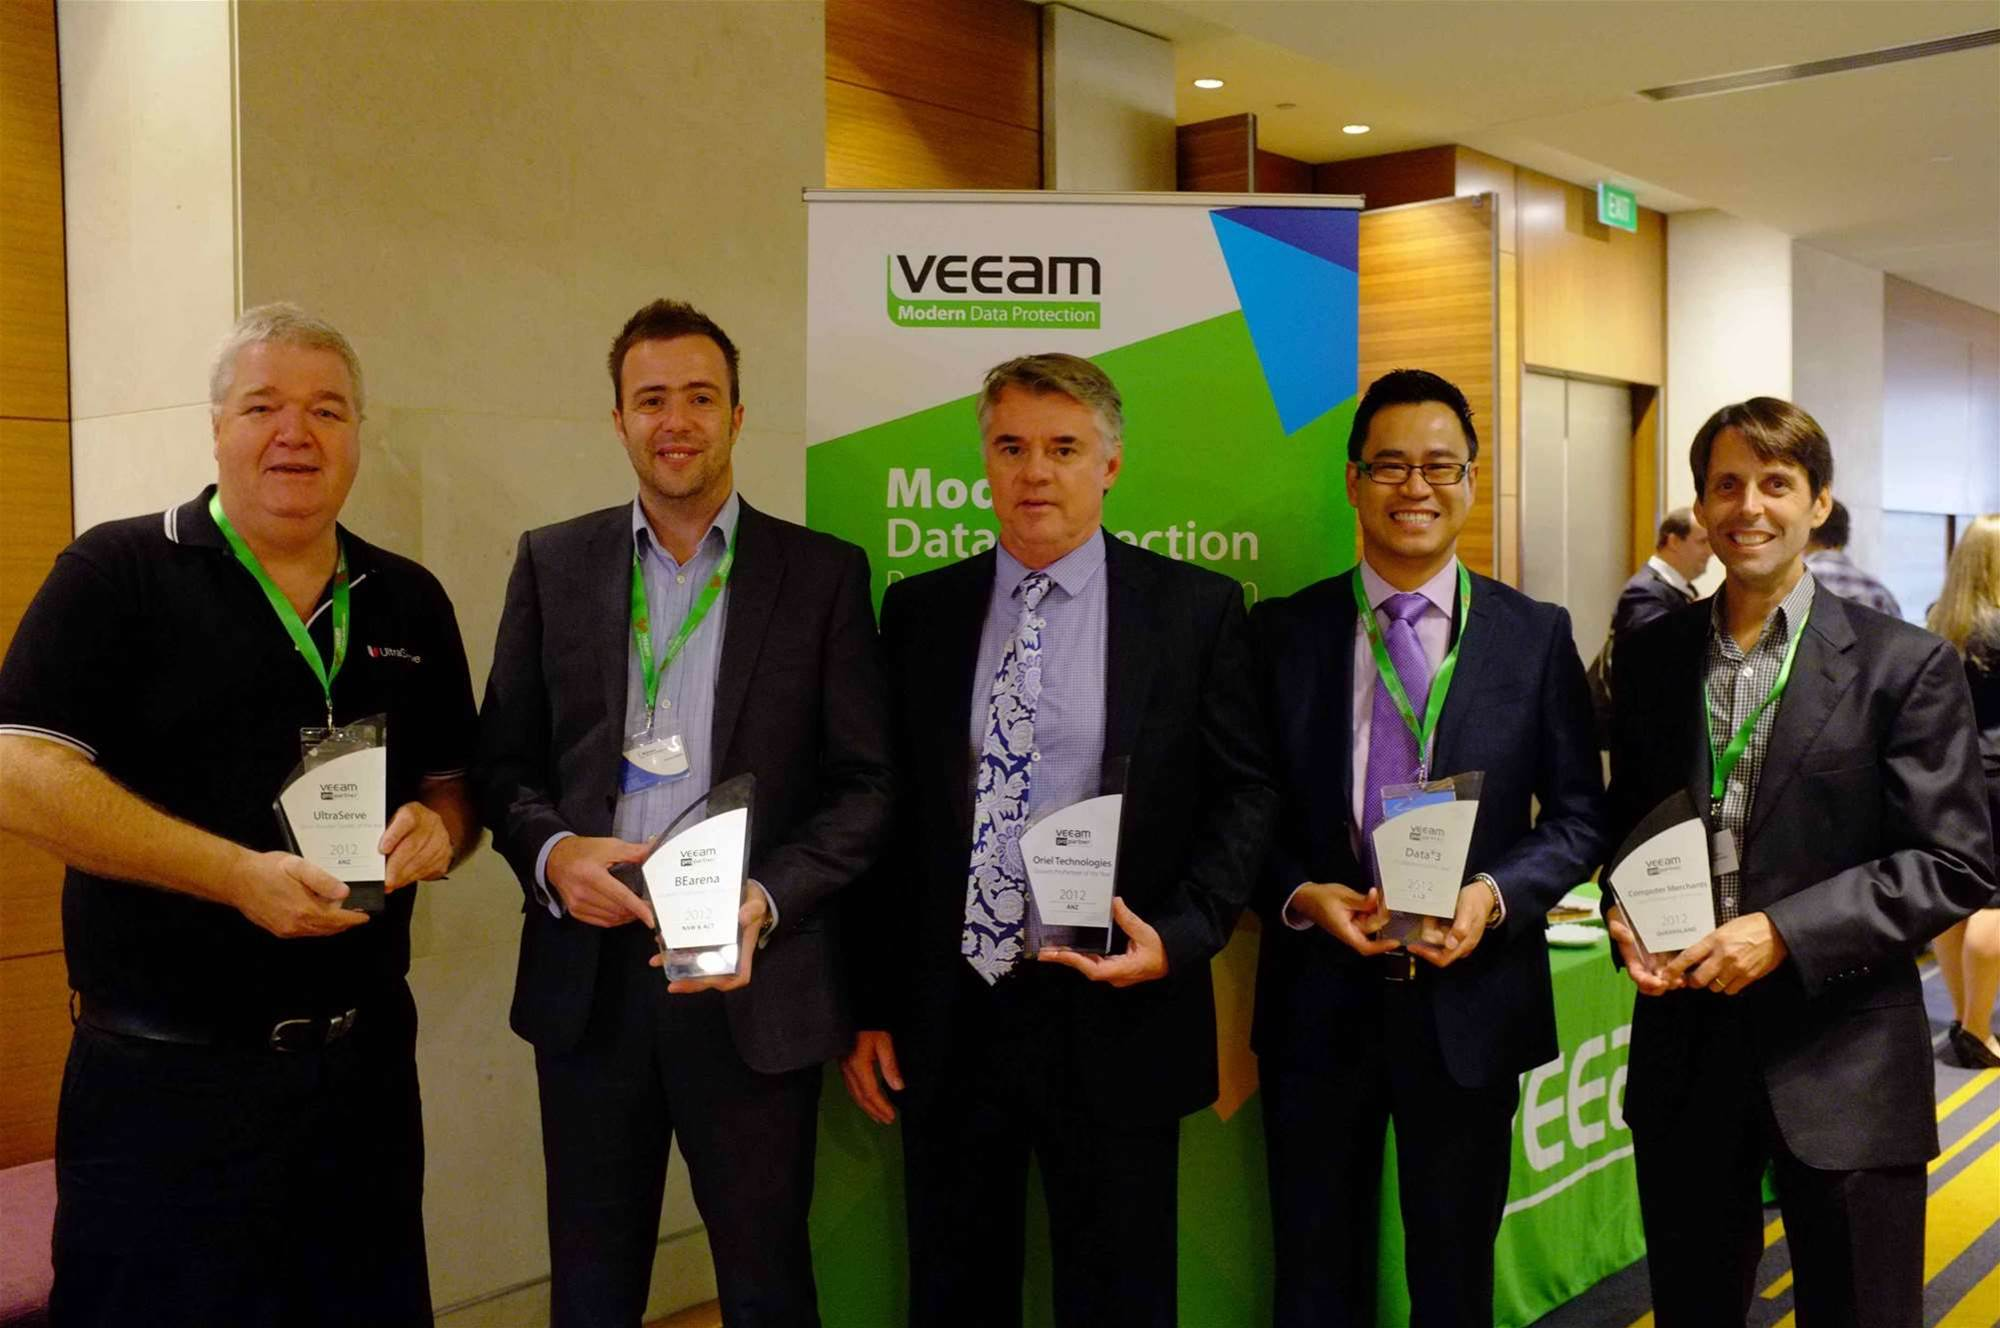 In pictures: Veeam ProPartner awards